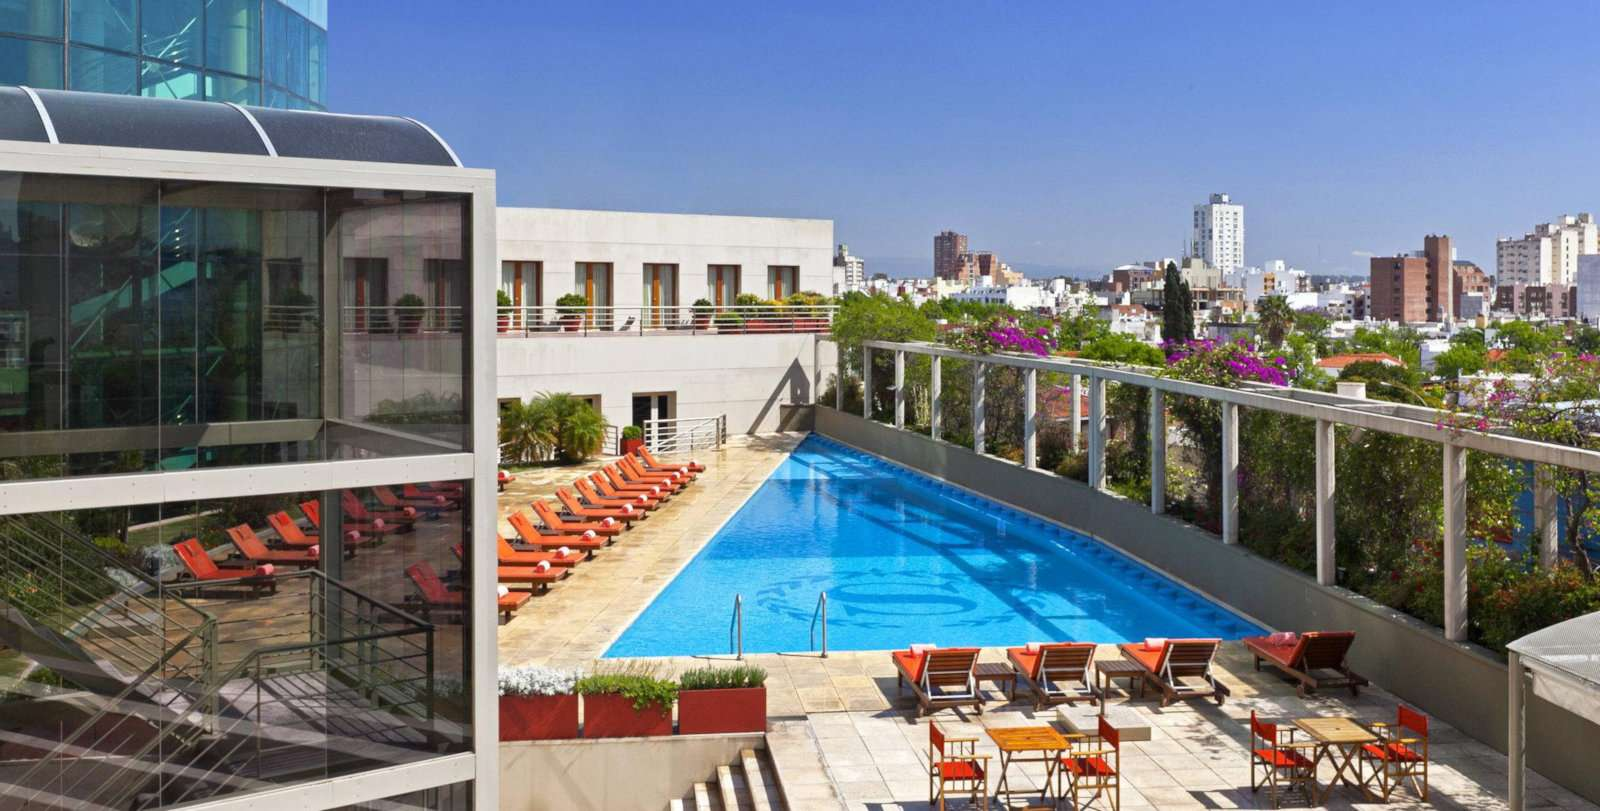 The Sheraton Córdoba is a lovely gay friendly hotel in Alberdi area of Cordoba